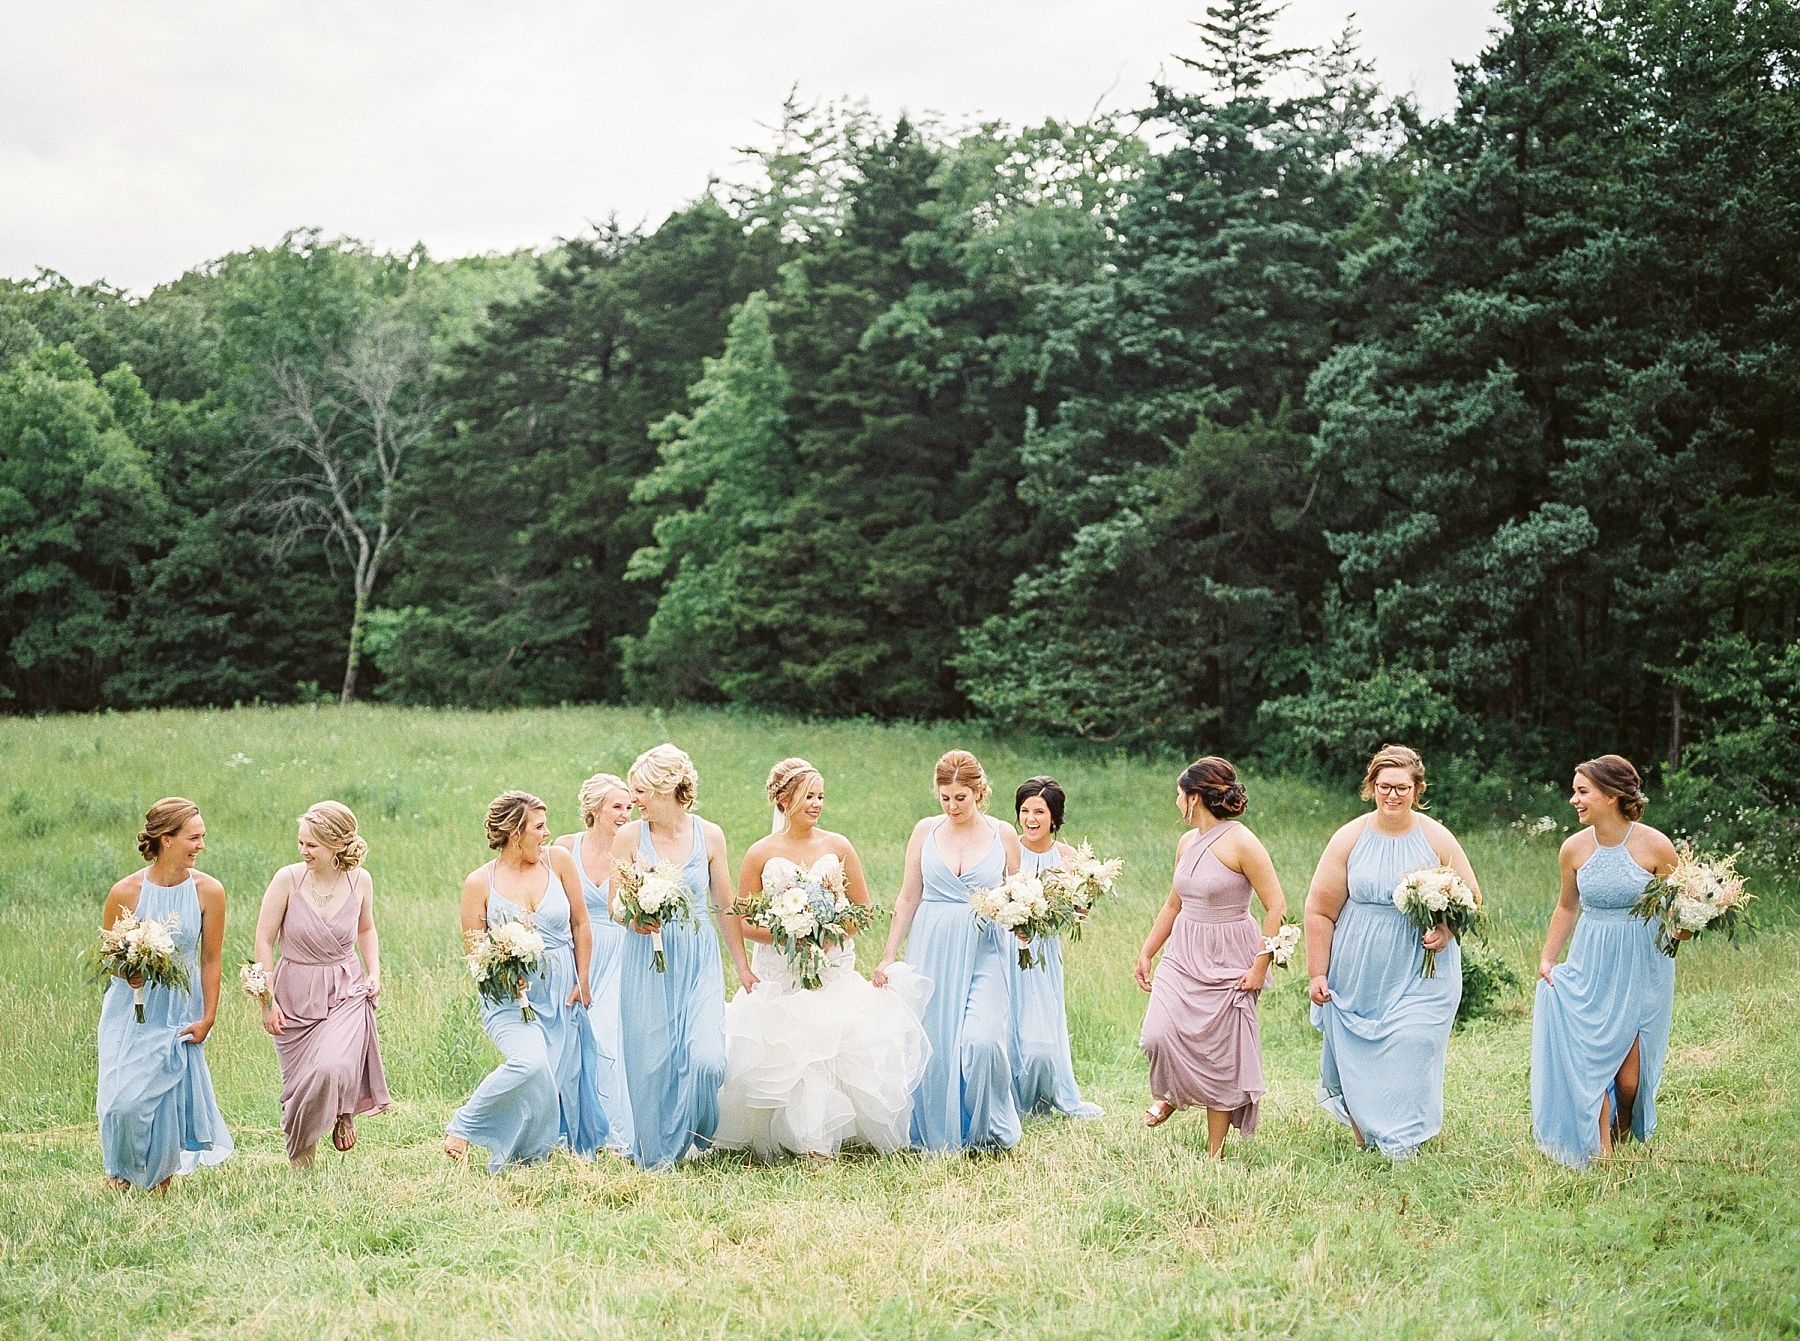 Sky Blue and Quartz Spring Wedding at Open Fields of Family Farm by Kelsi Kliethermes Photography Best Missouri and Maui Wedding Photographer_0022.jpg